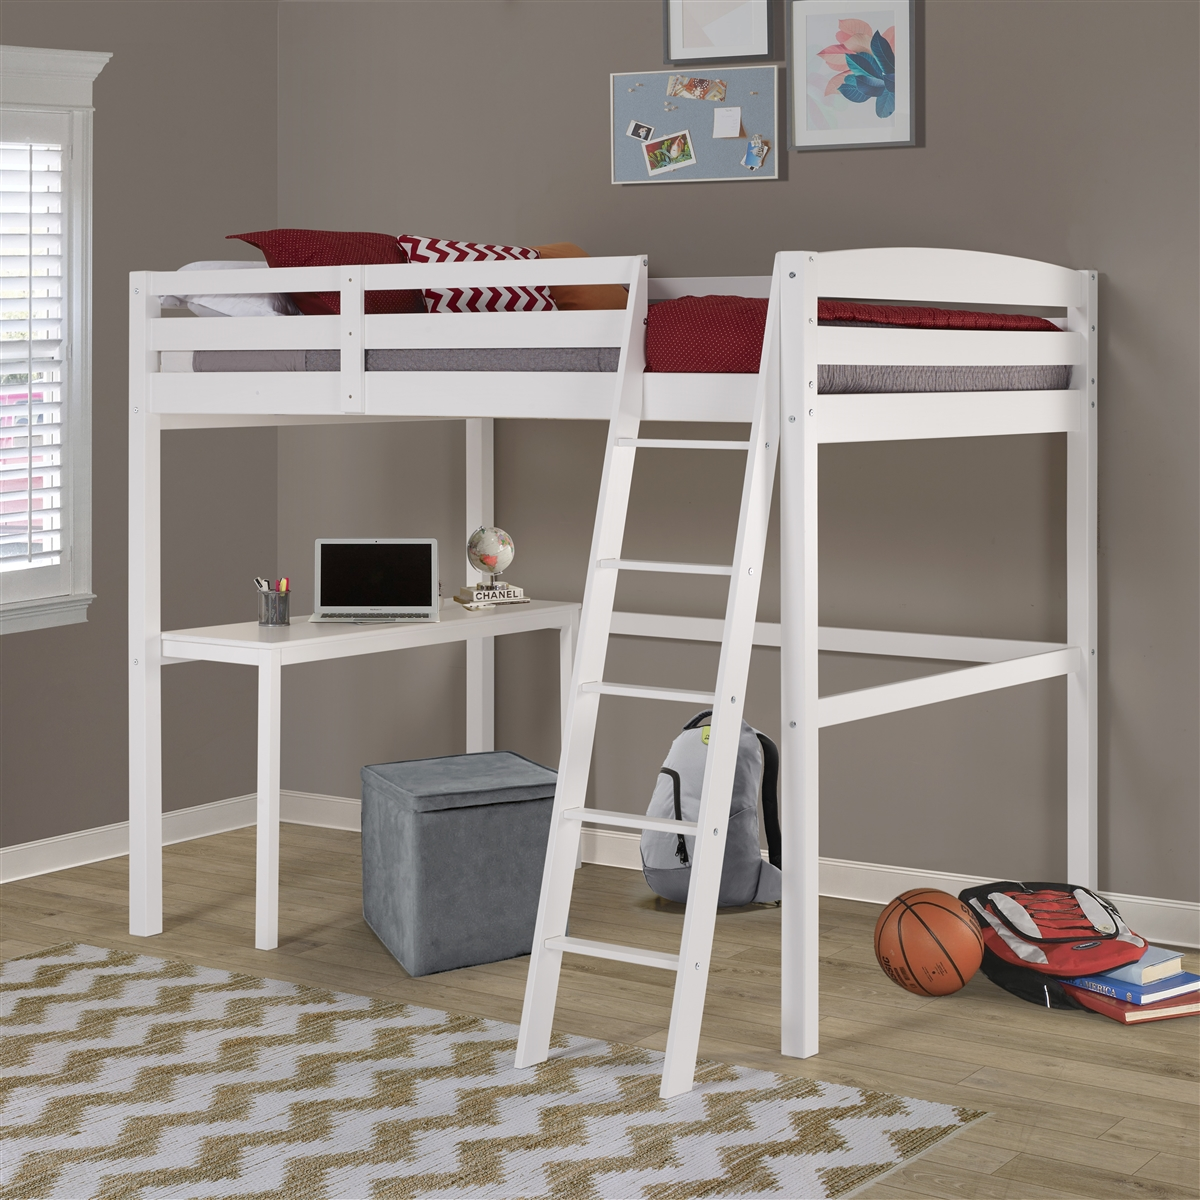 Tribeca Twin Size High Loft Bed With Desk White Finish